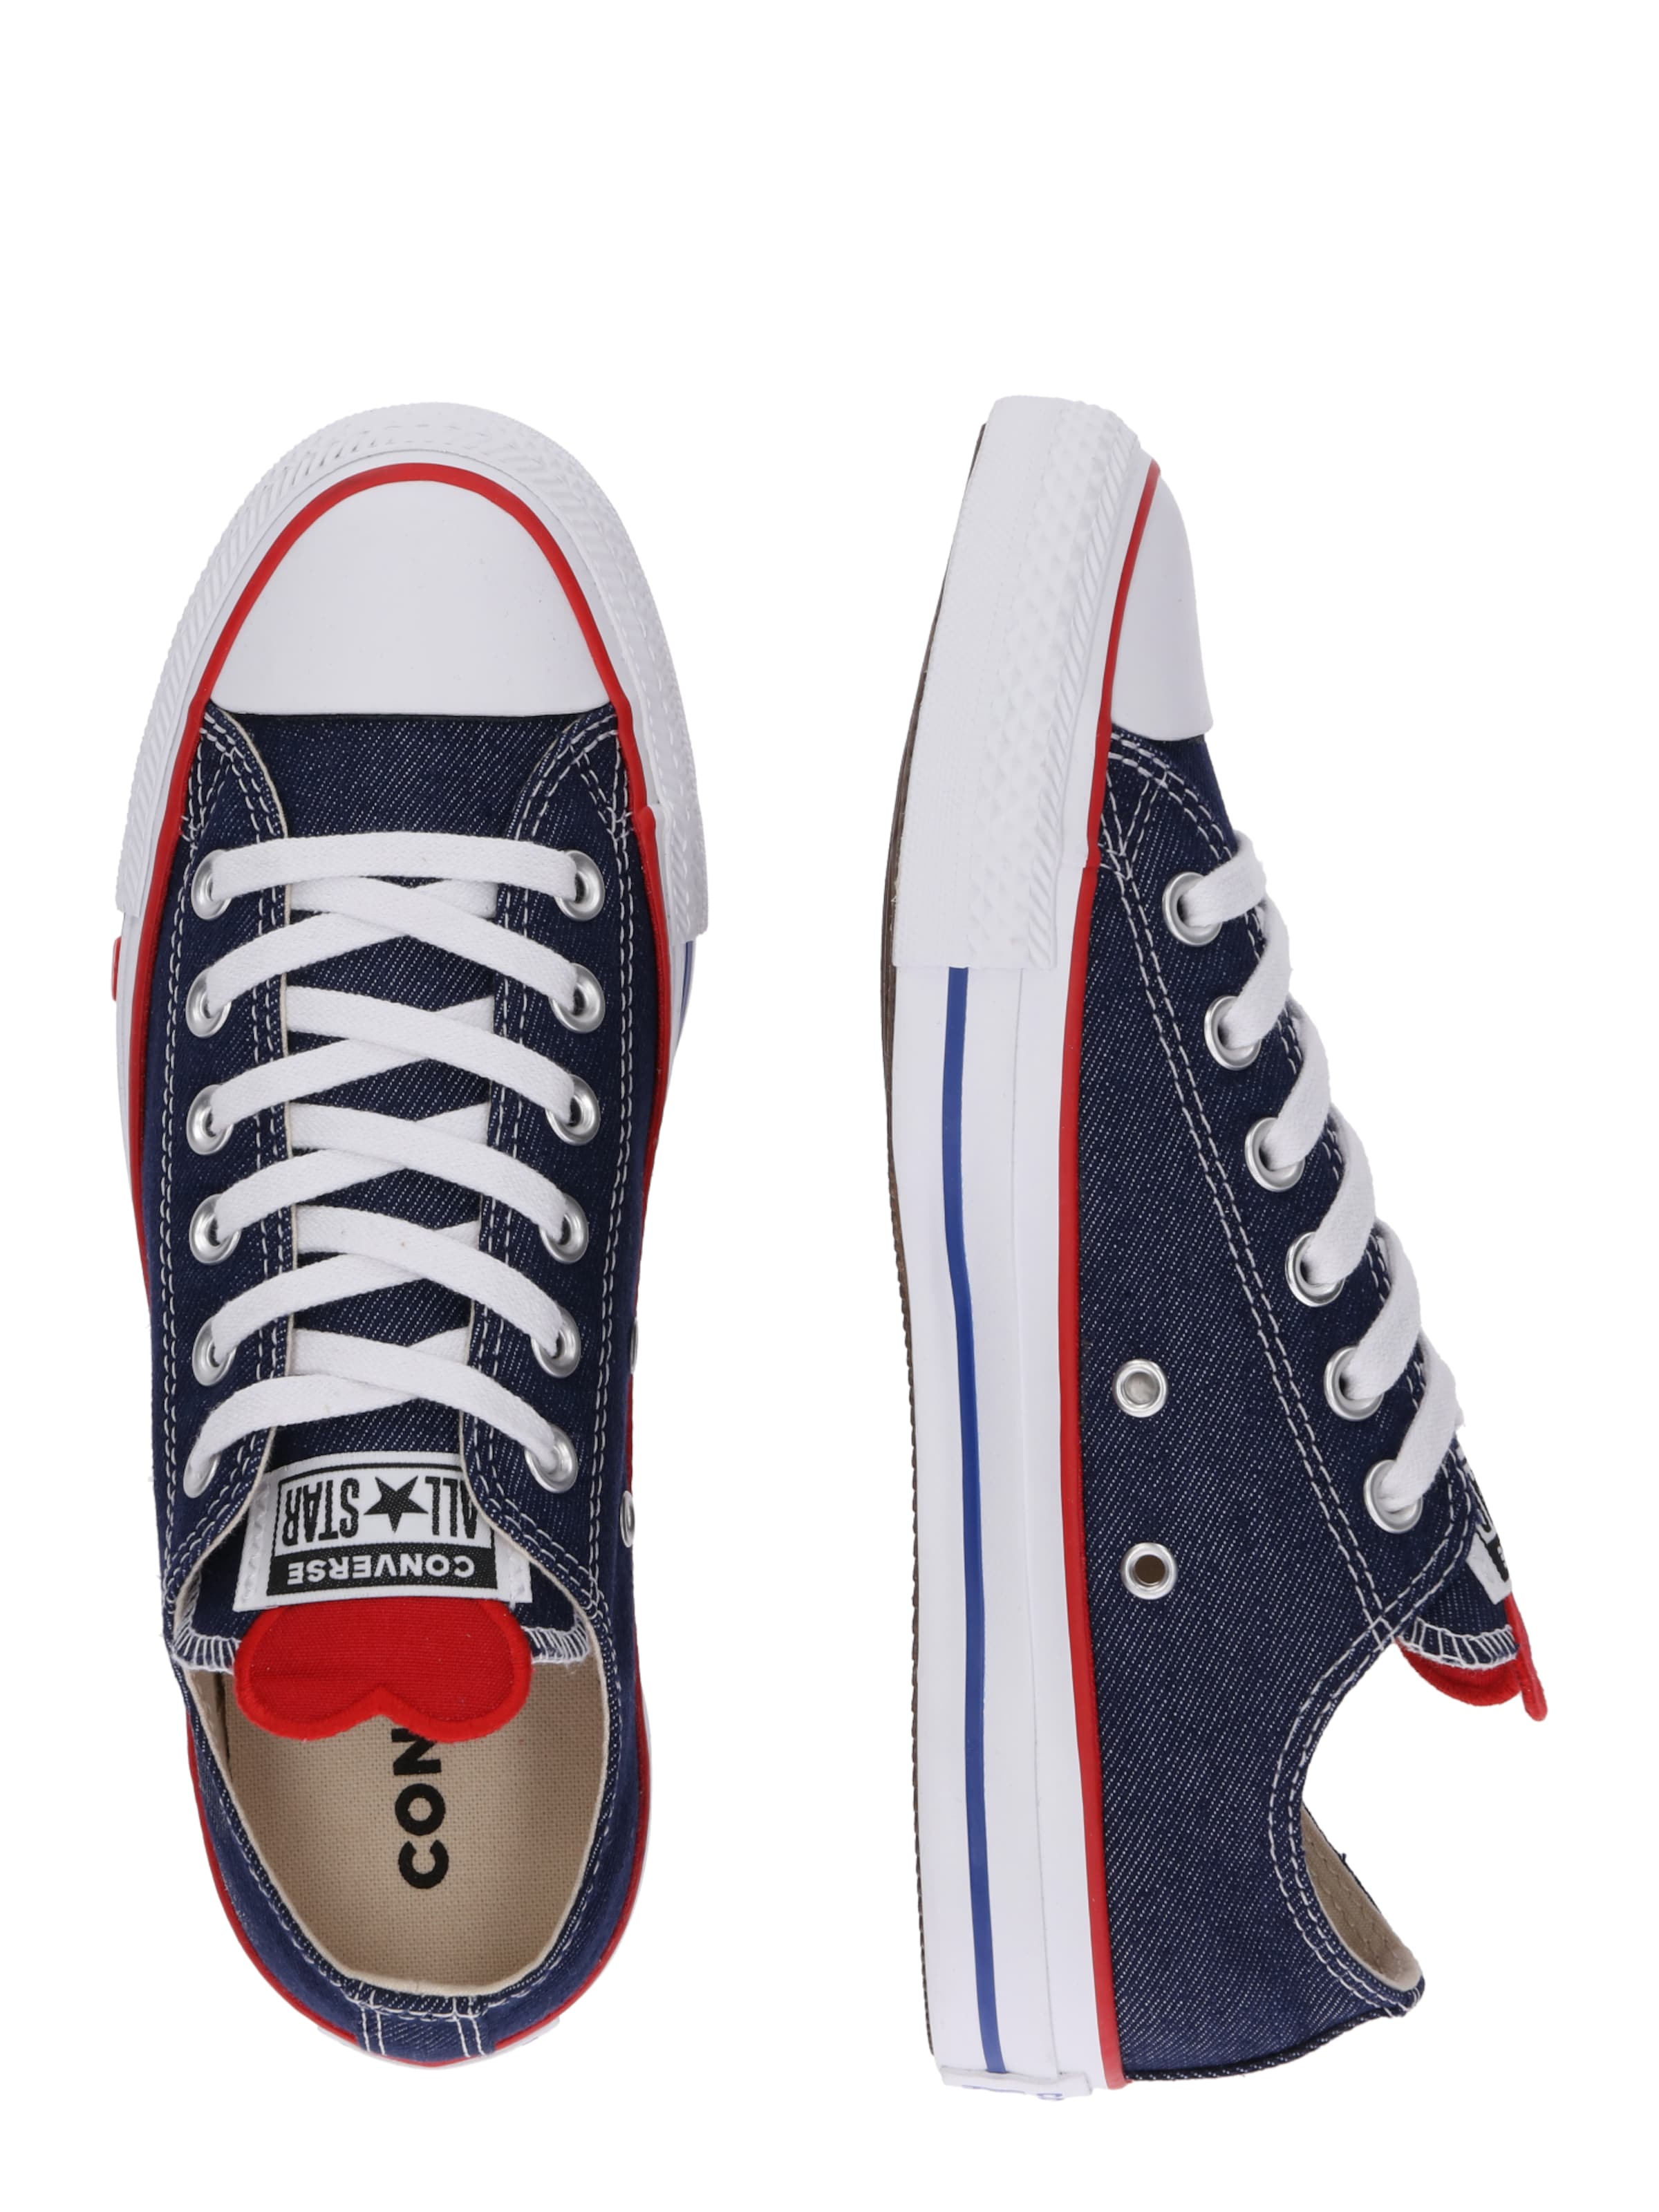 DenimWeiß Blue Converse 'chucks' In Sneaker 8m0Nwnv